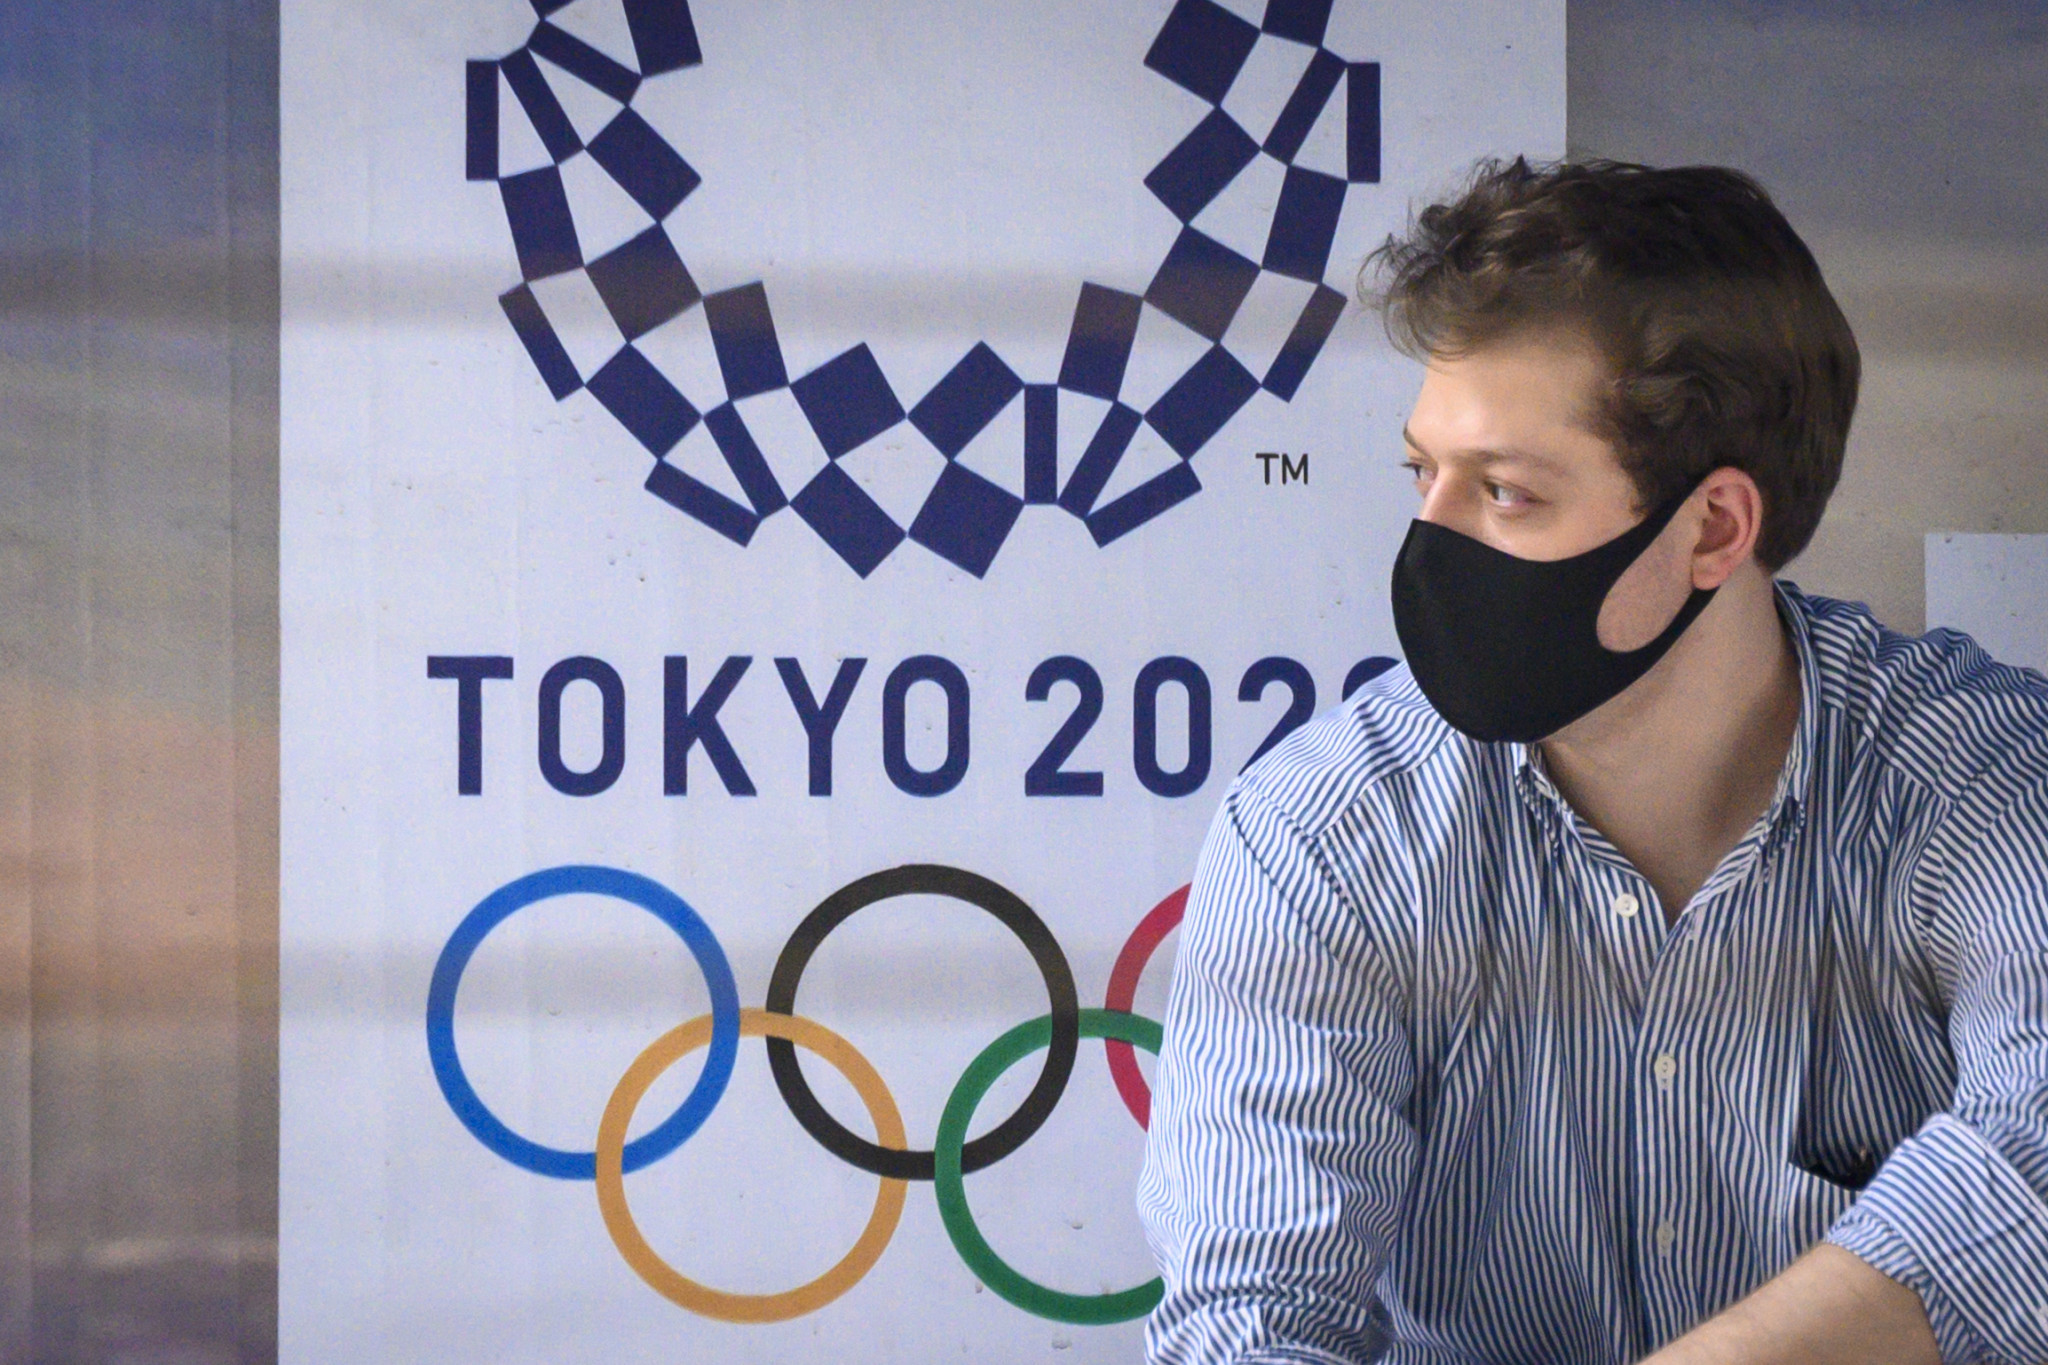 Poll finds 70 per cent expect Tokyo 2020 will not be held as scheduled